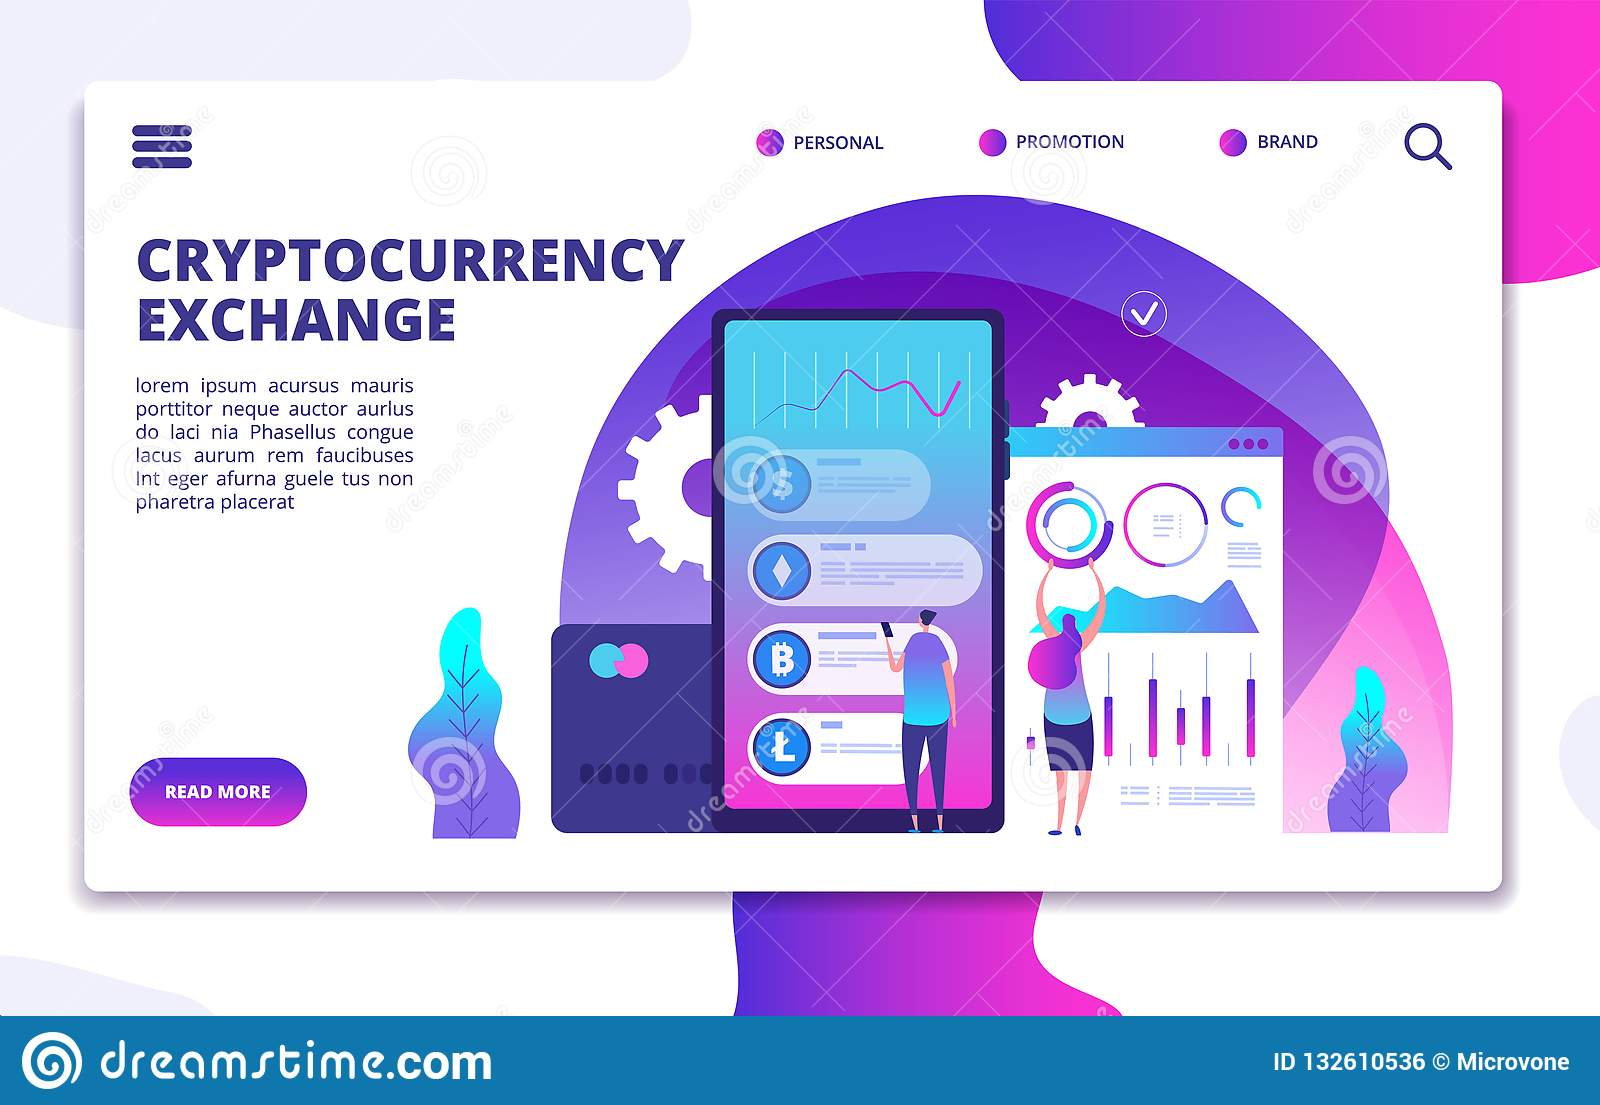 cryptocurrency exchange business account